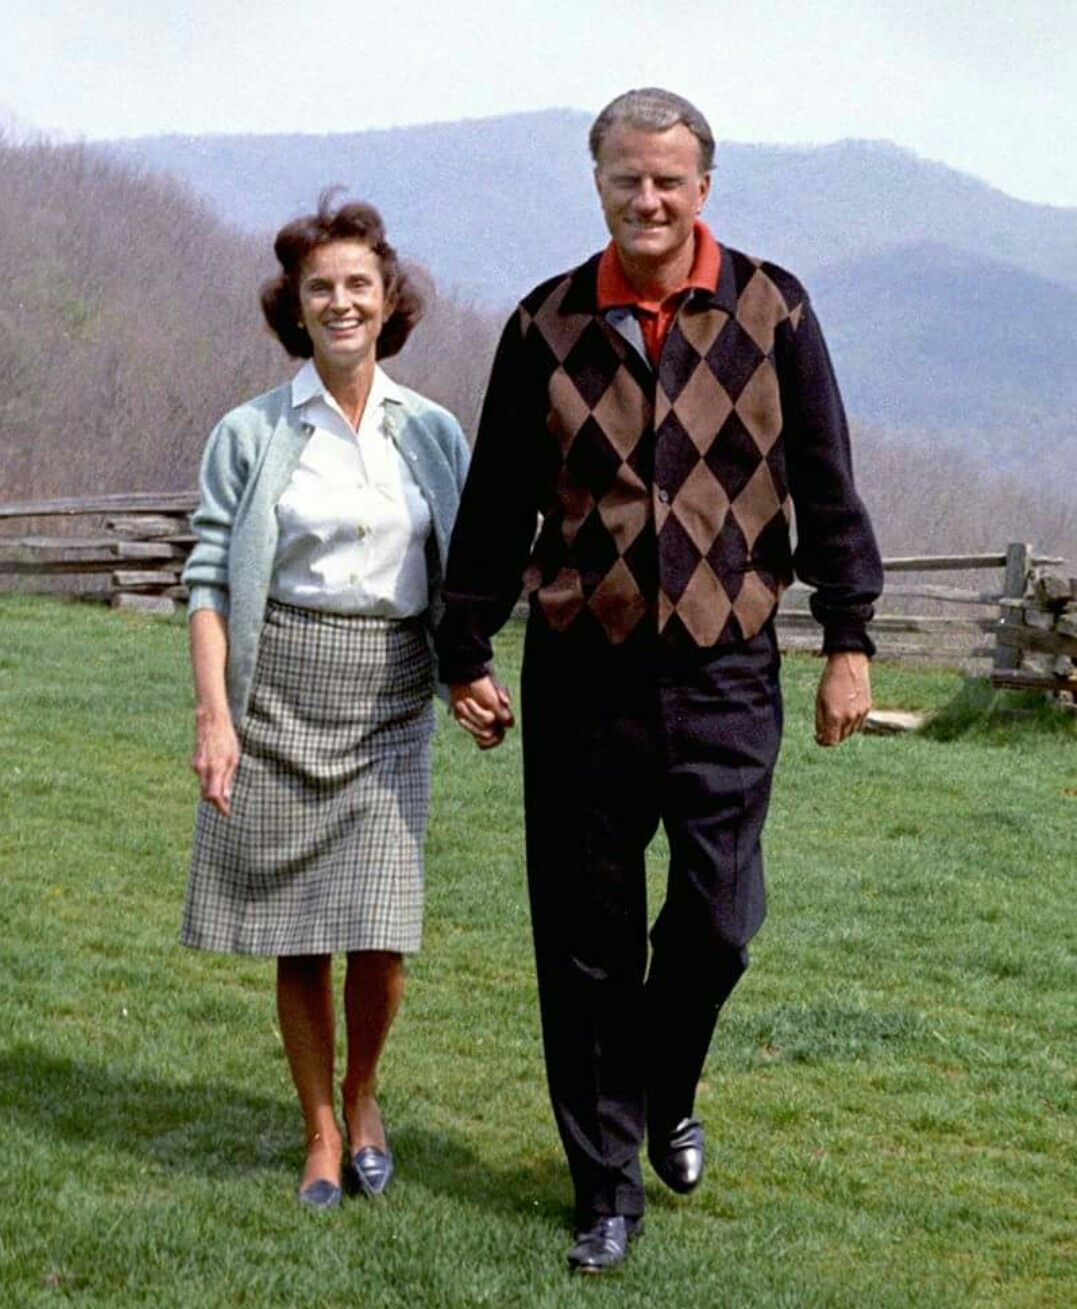 In their prime! Ruth and Billy Graham! Great Americans!